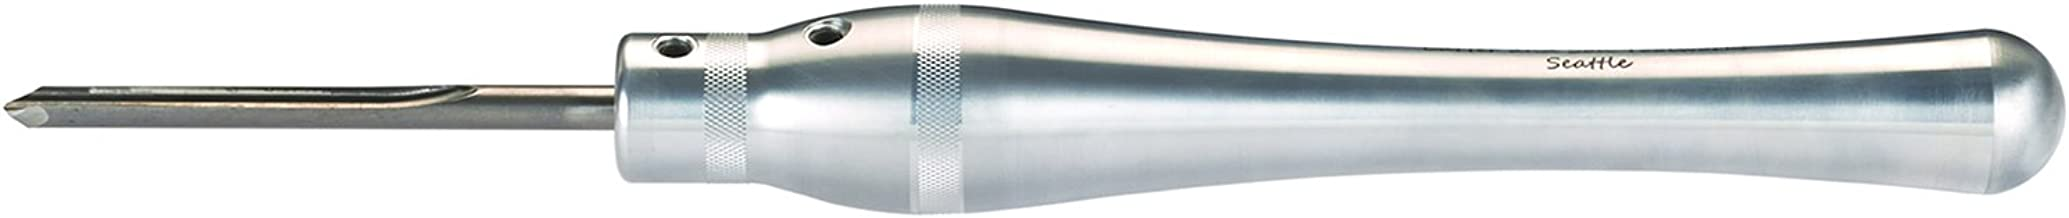 """product image for Spindle Gouge 3/8"""""""